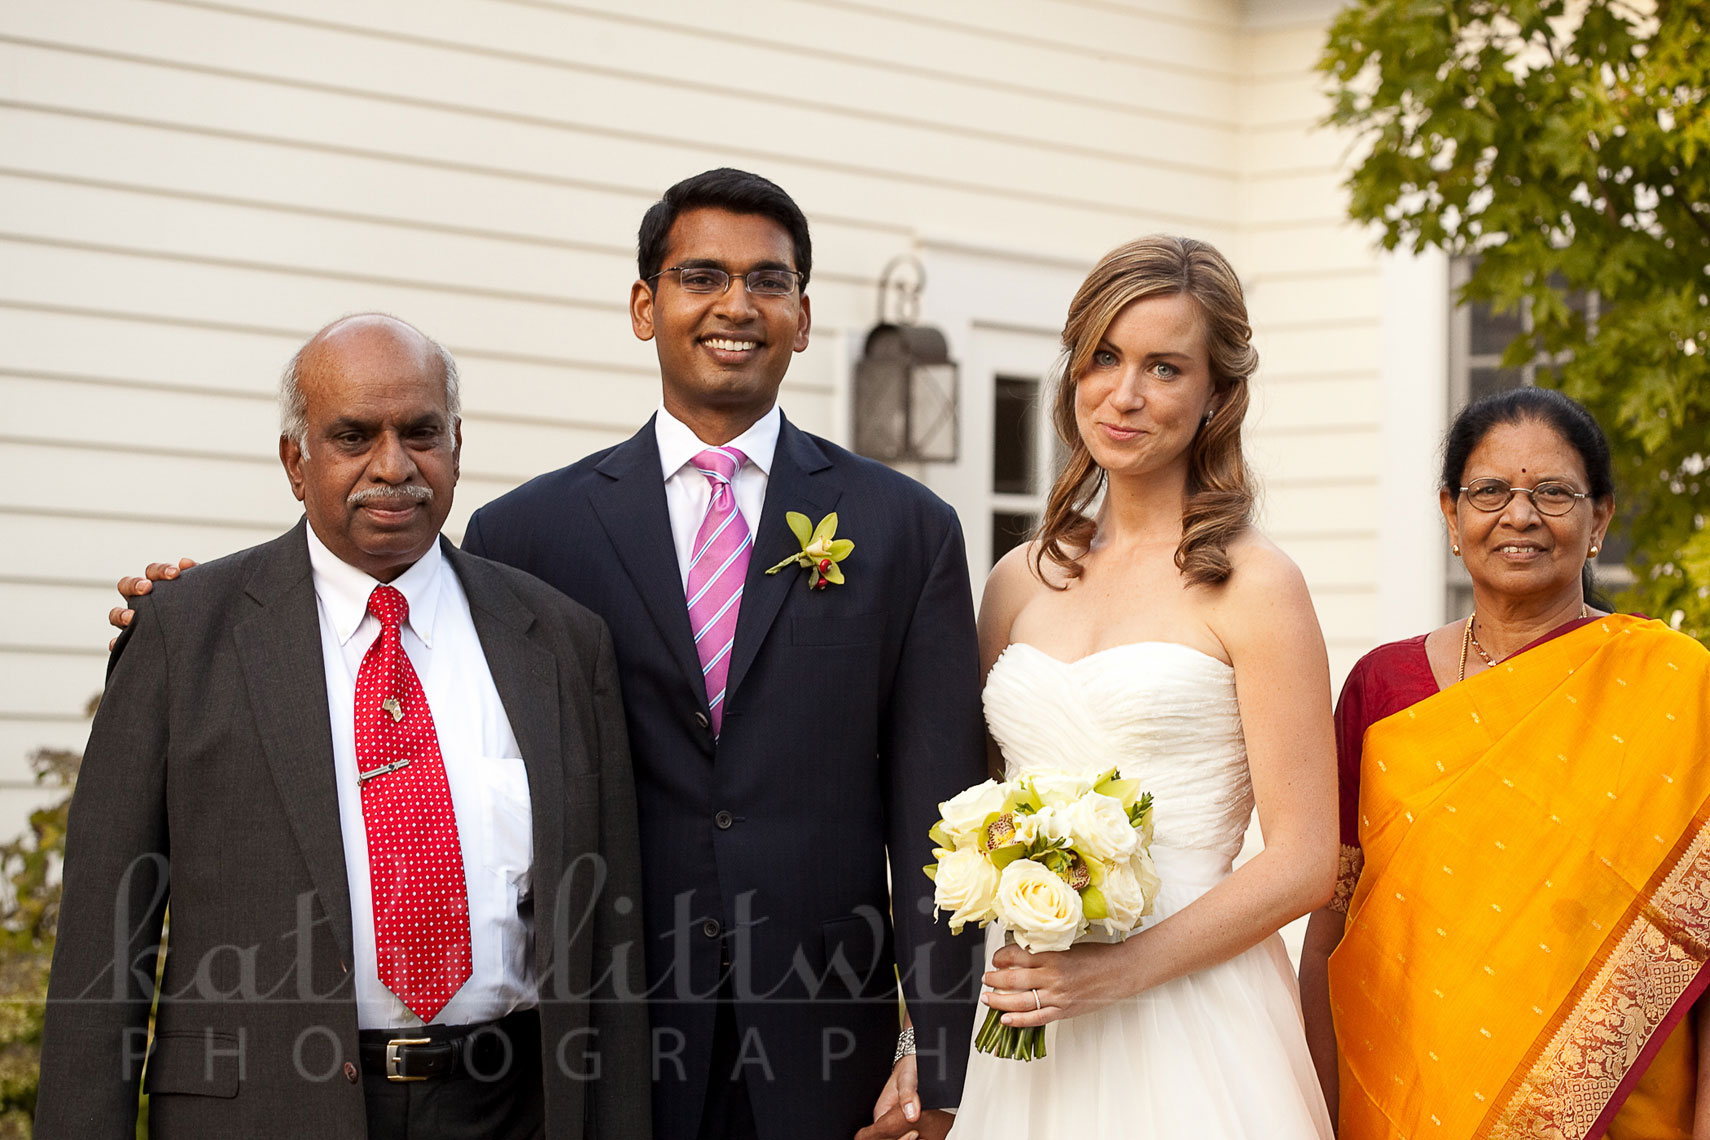 Kathi_Littwin_Photography_Mashomack_wedding_3067